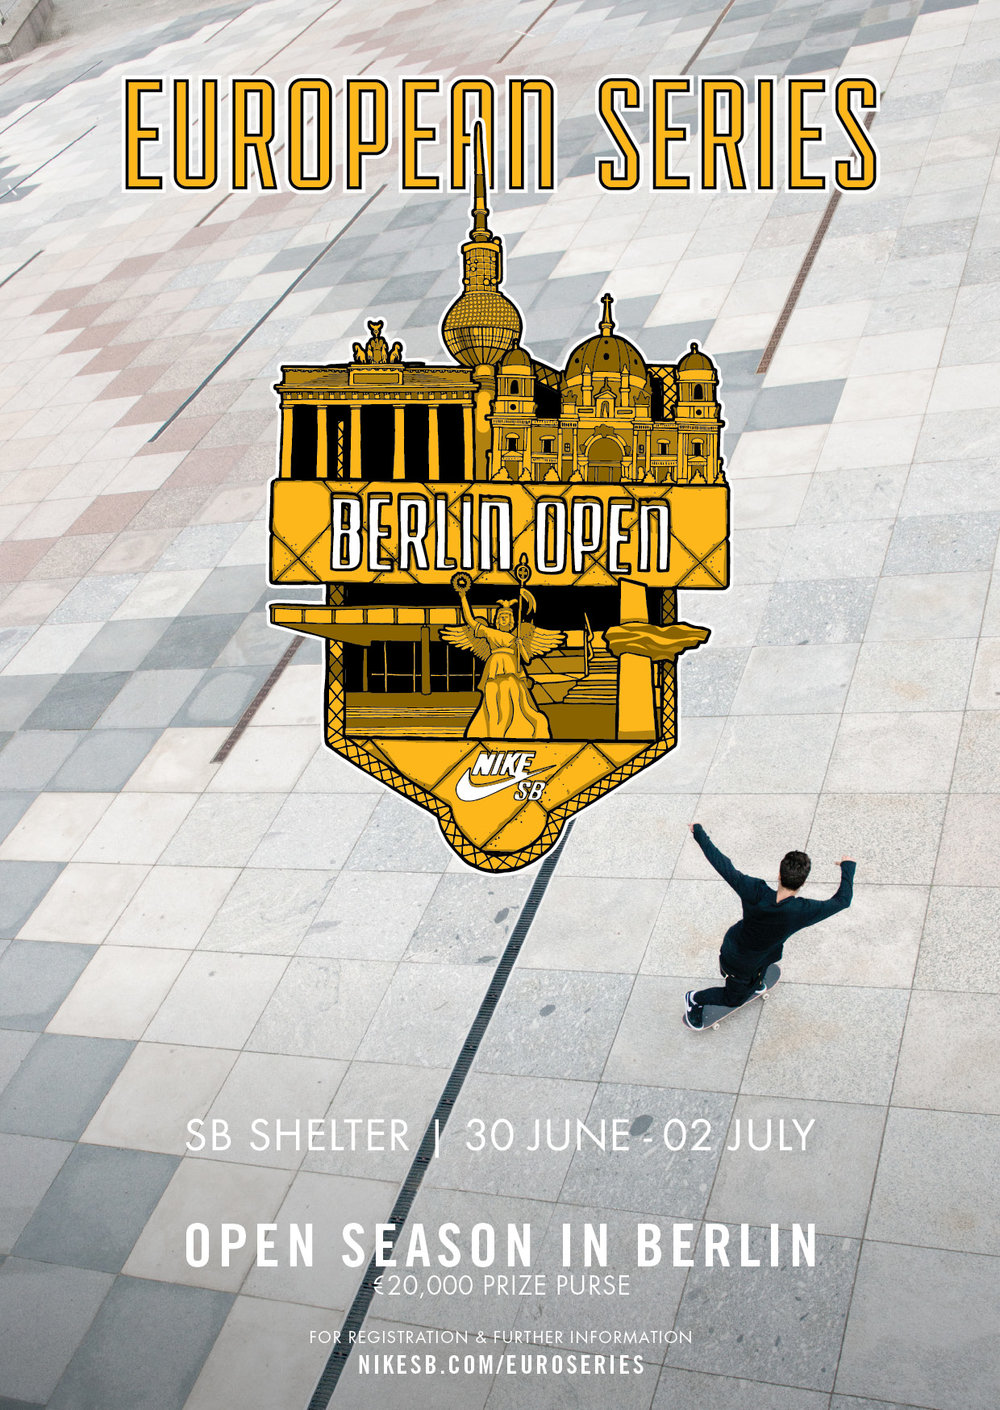 400937daa53bdc The Nike SB Shelter Open kicks off in Berlin on the 30th of June. For more  info click here.